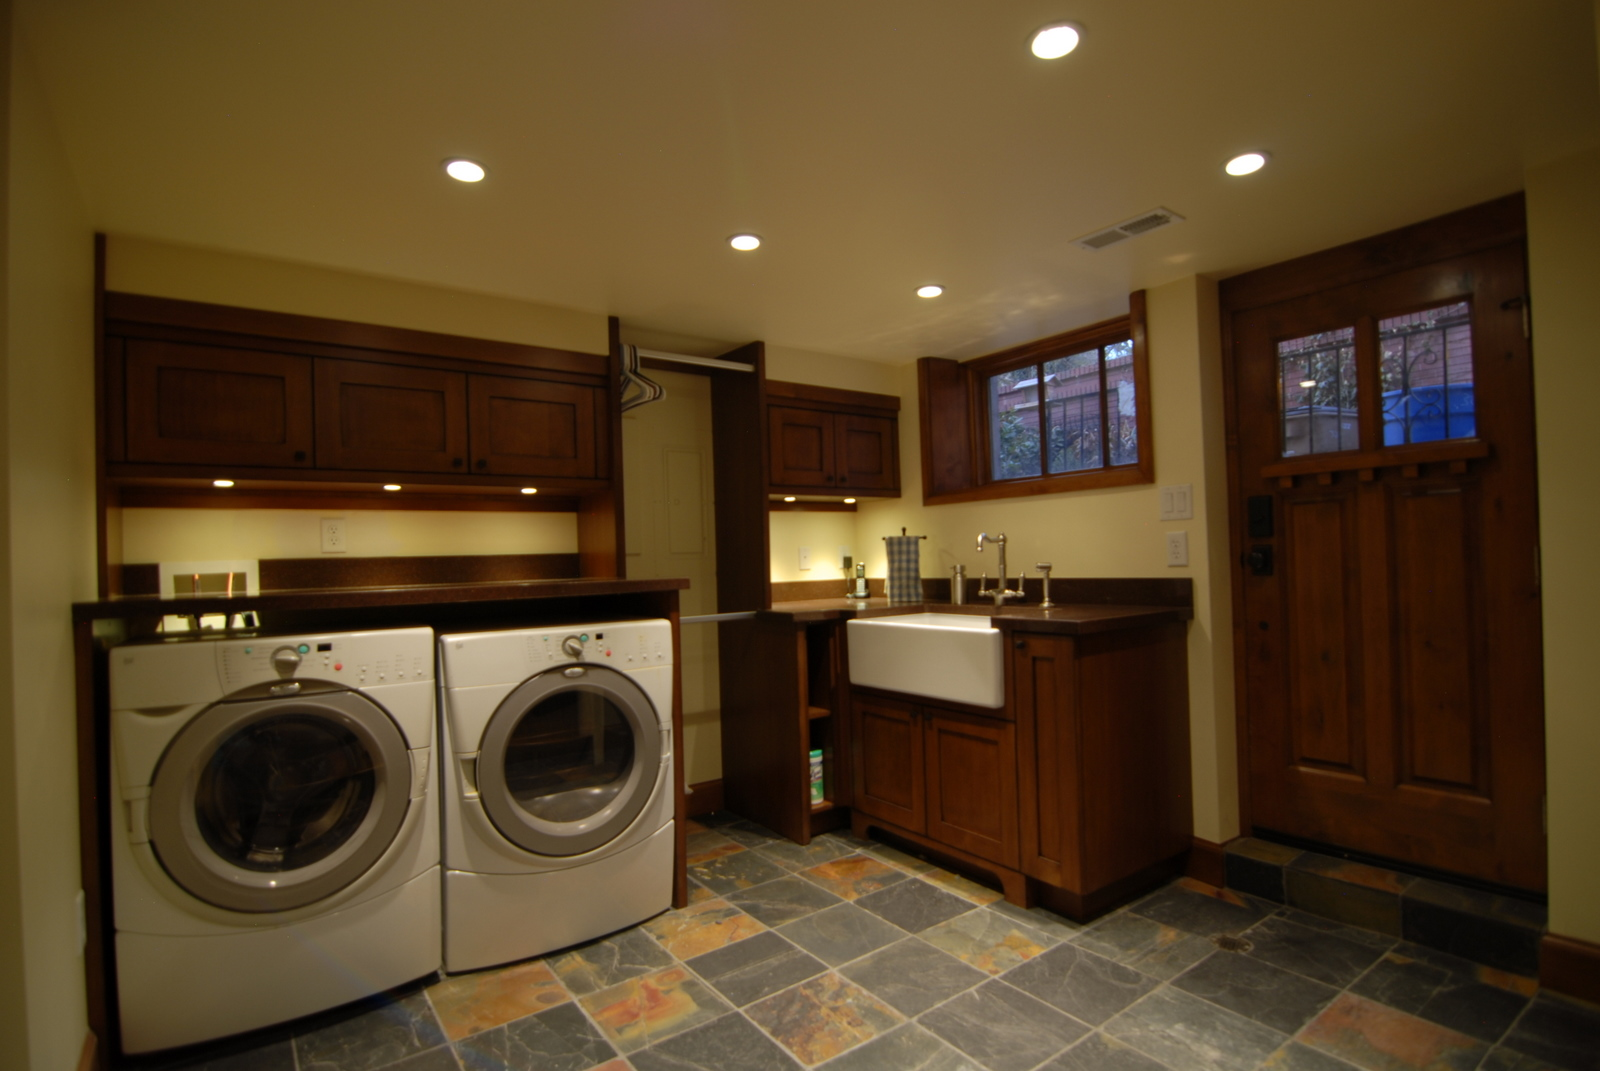 Basement Laundry Room Interior Remodel Basement Remodel What Started As A Typical Drab Unfinished Basement